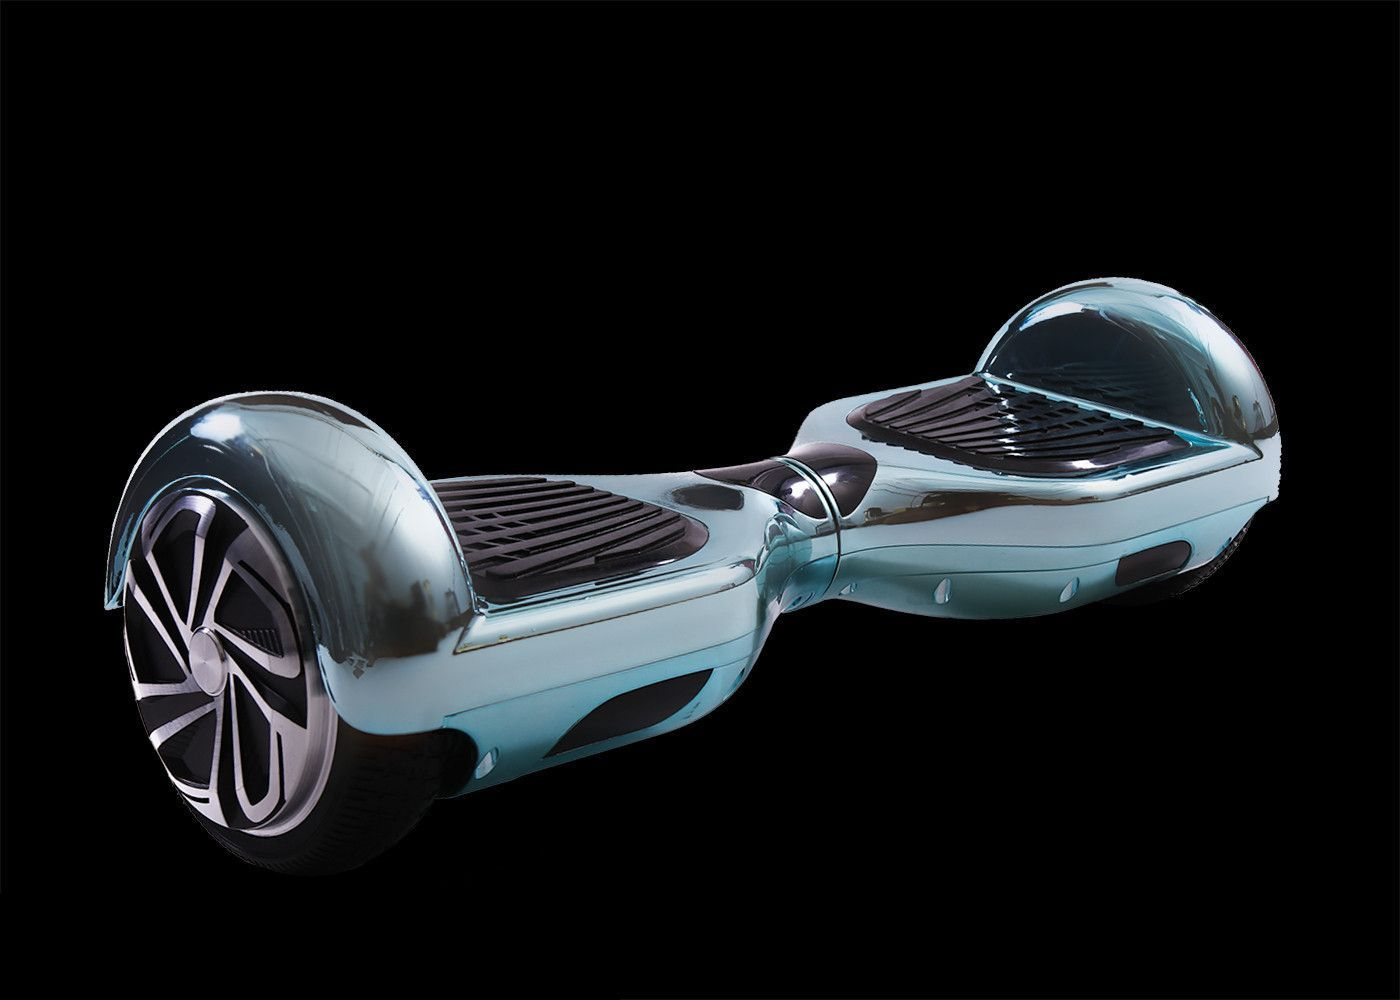 hoverboard 360 smart balance board ahhh i want one so. Black Bedroom Furniture Sets. Home Design Ideas